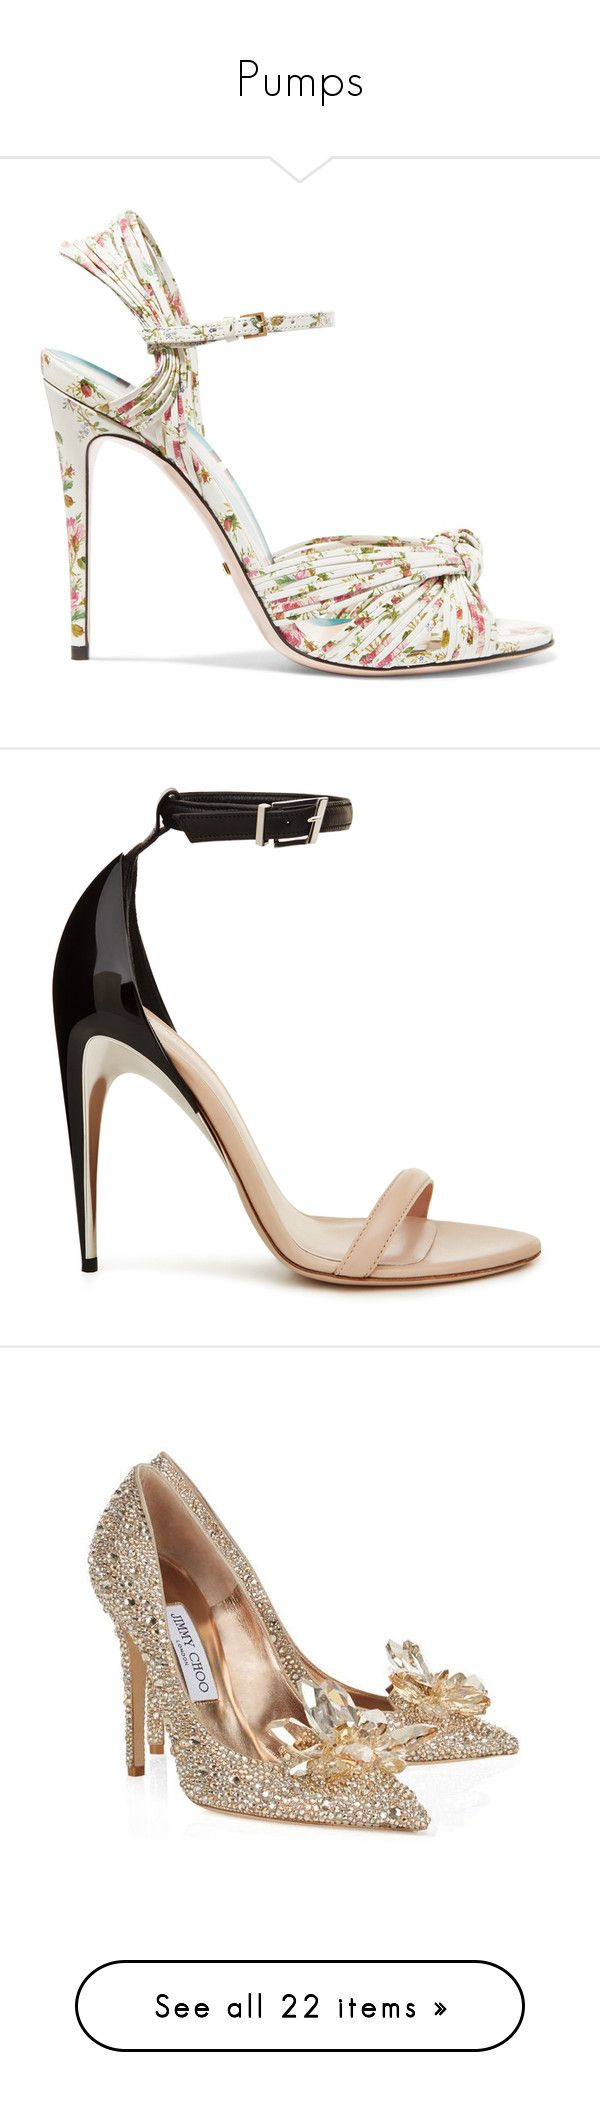 """Pumps"" by luciaborrayo on Polyvore featuring shoes, sandals, heels, white, multi color high heel sandals, leather high heel sandals, gucci sandals, gucci shoes, strappy leather sandals y beige"